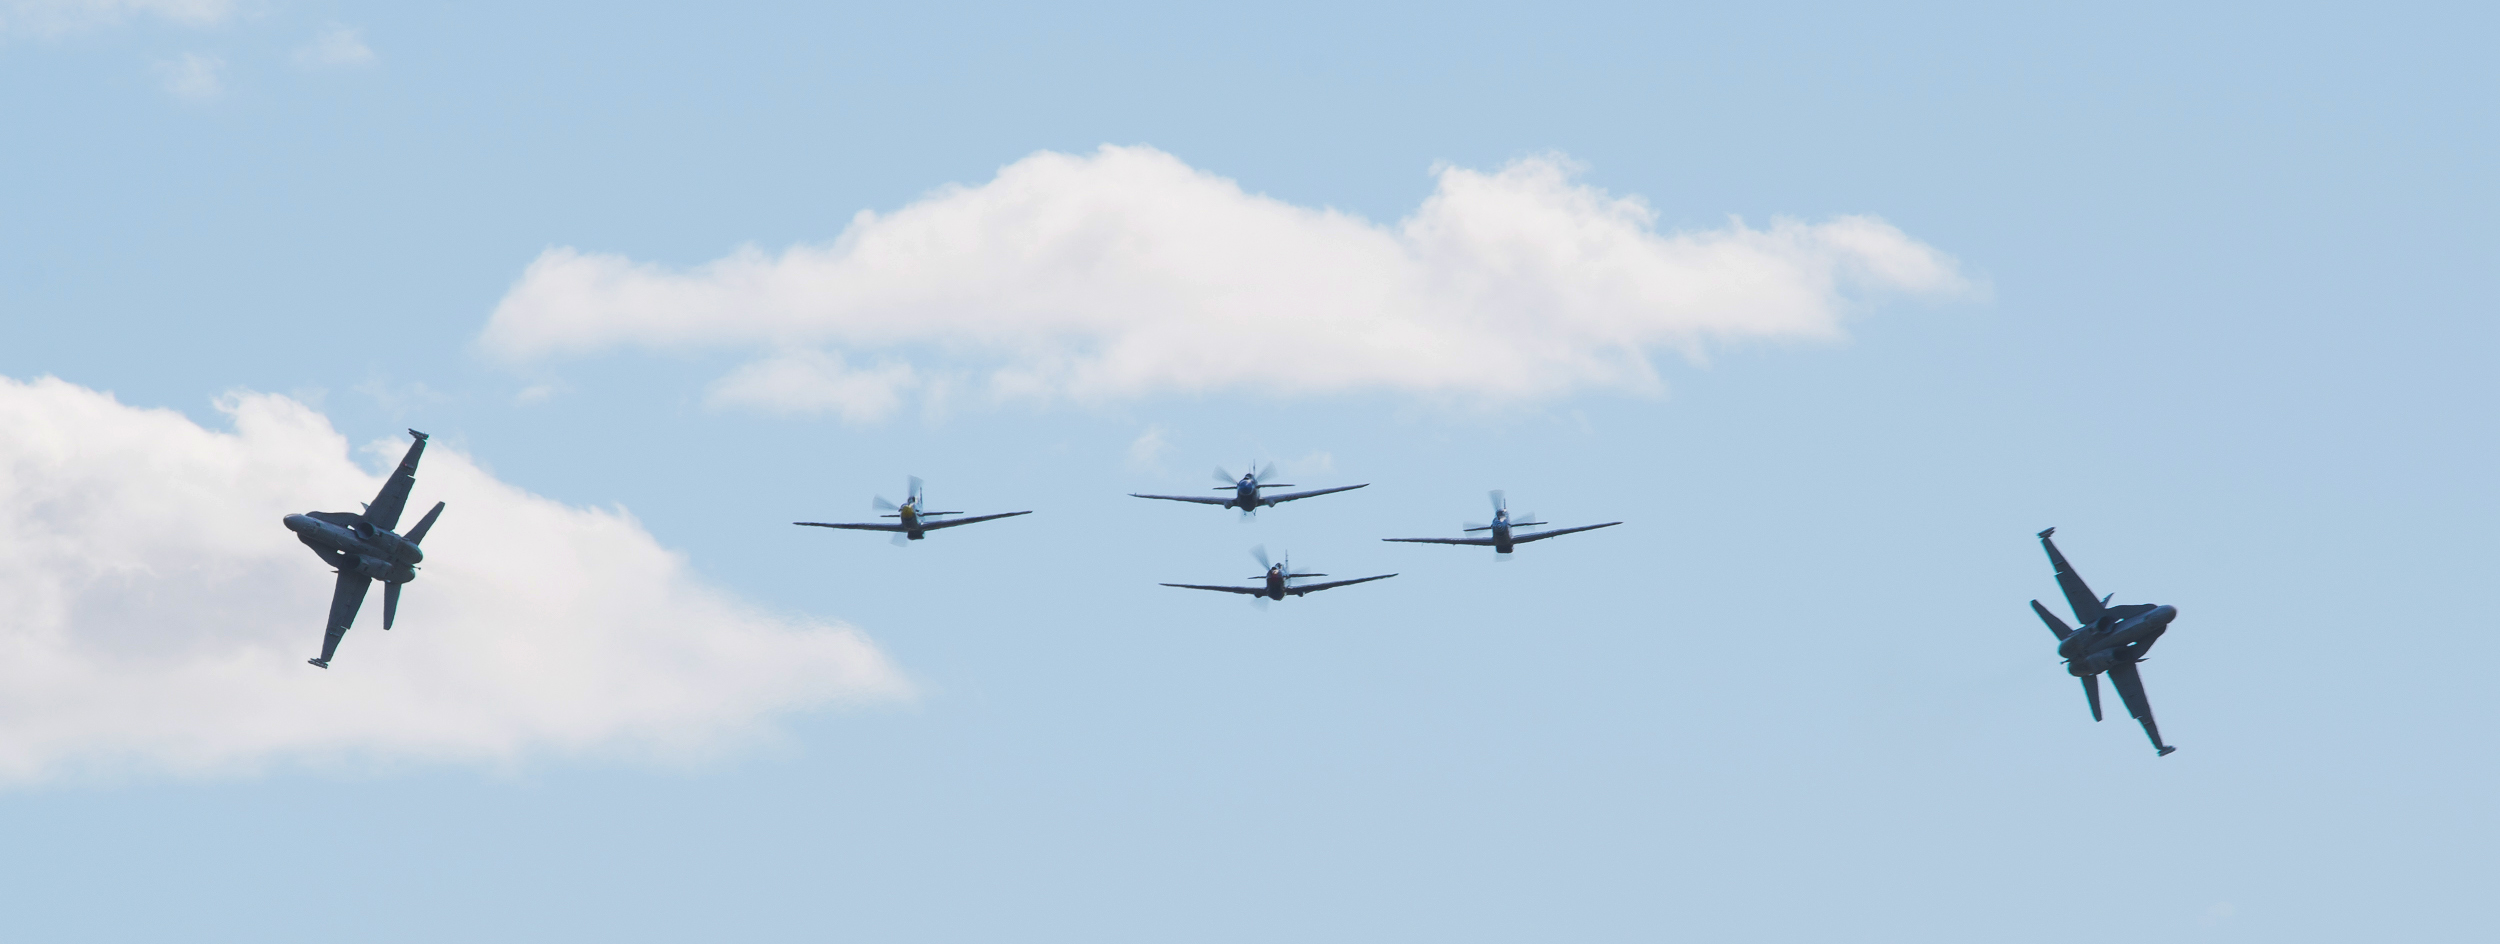 The Show Opening Formation with 2 x F-18's x Mustangs & 2 x Kittyhawk's (Peter Christmas)